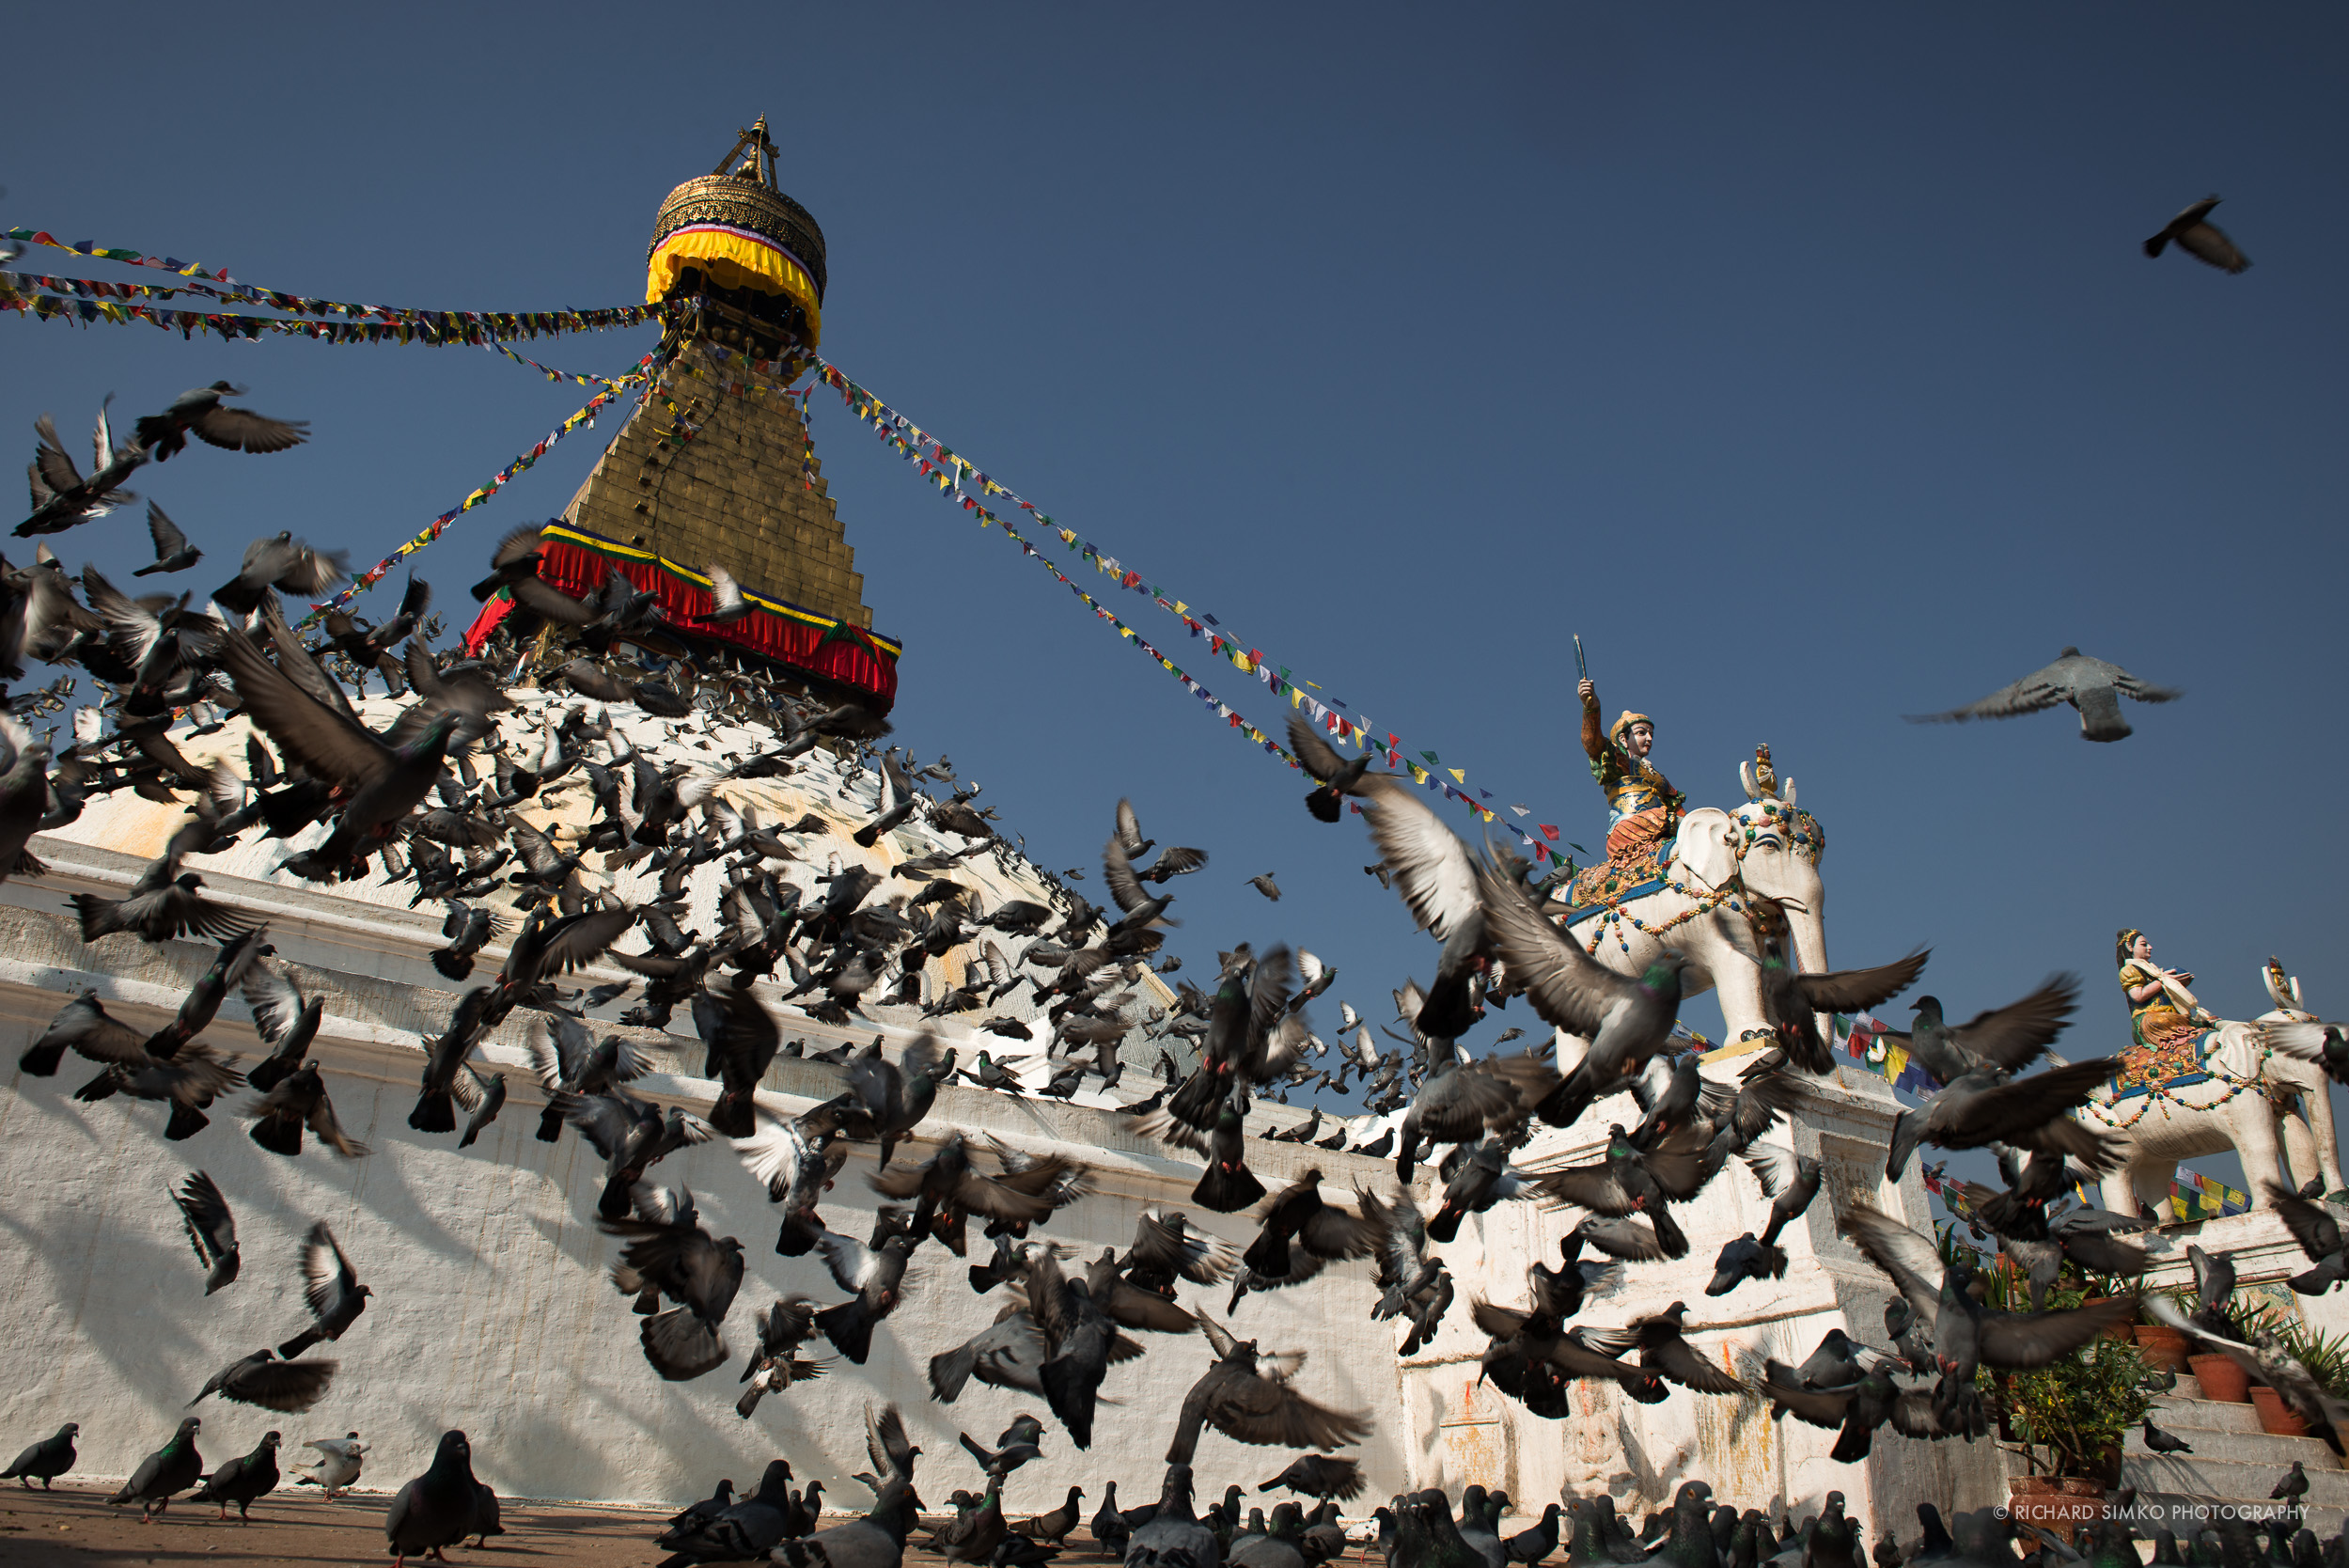 Boudhanat is biggest Buddhist stupa in Asia and also a home to thousands of pigeons.